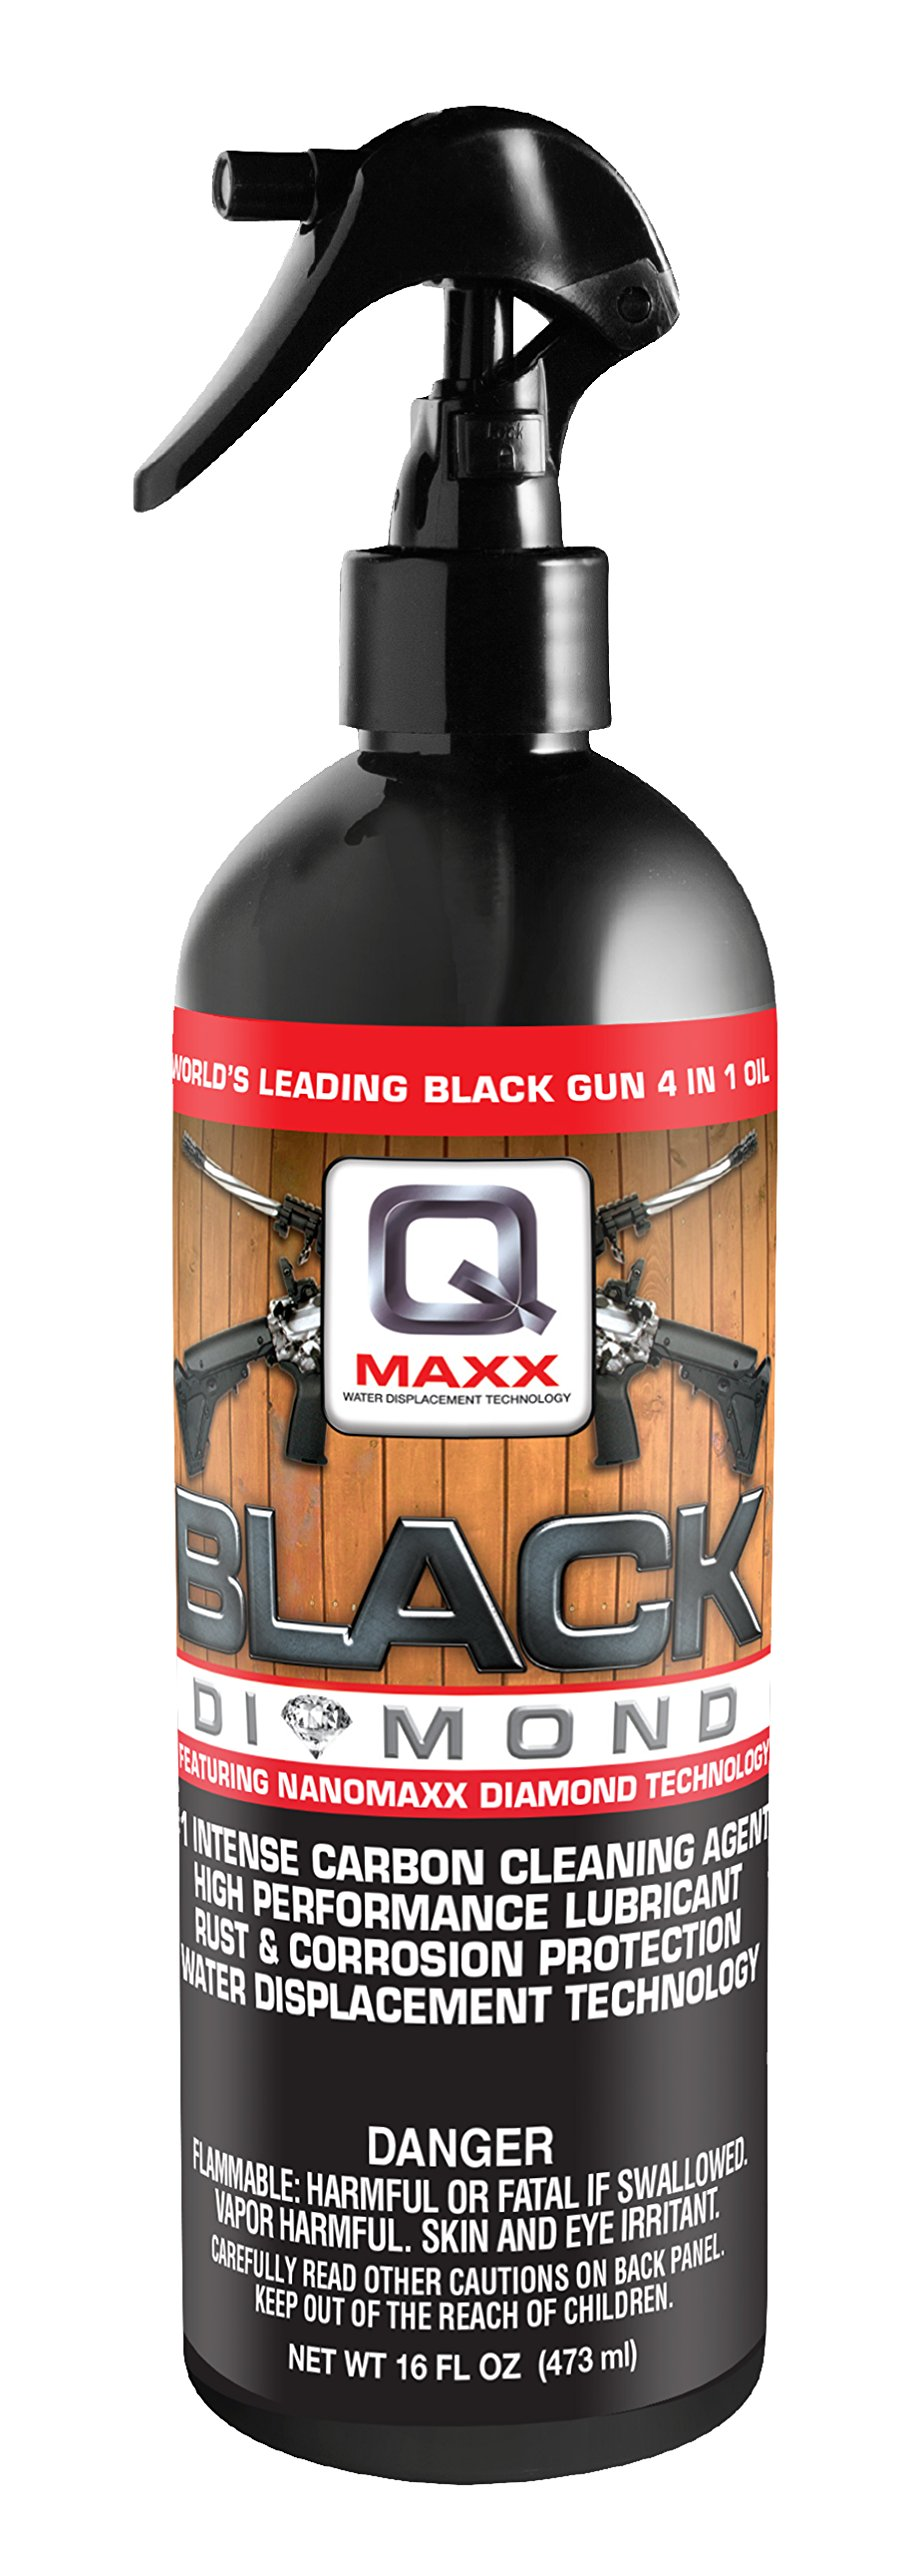 QMAXX Black Diamond Trigger Spray, 16 OZ. by QMAXX